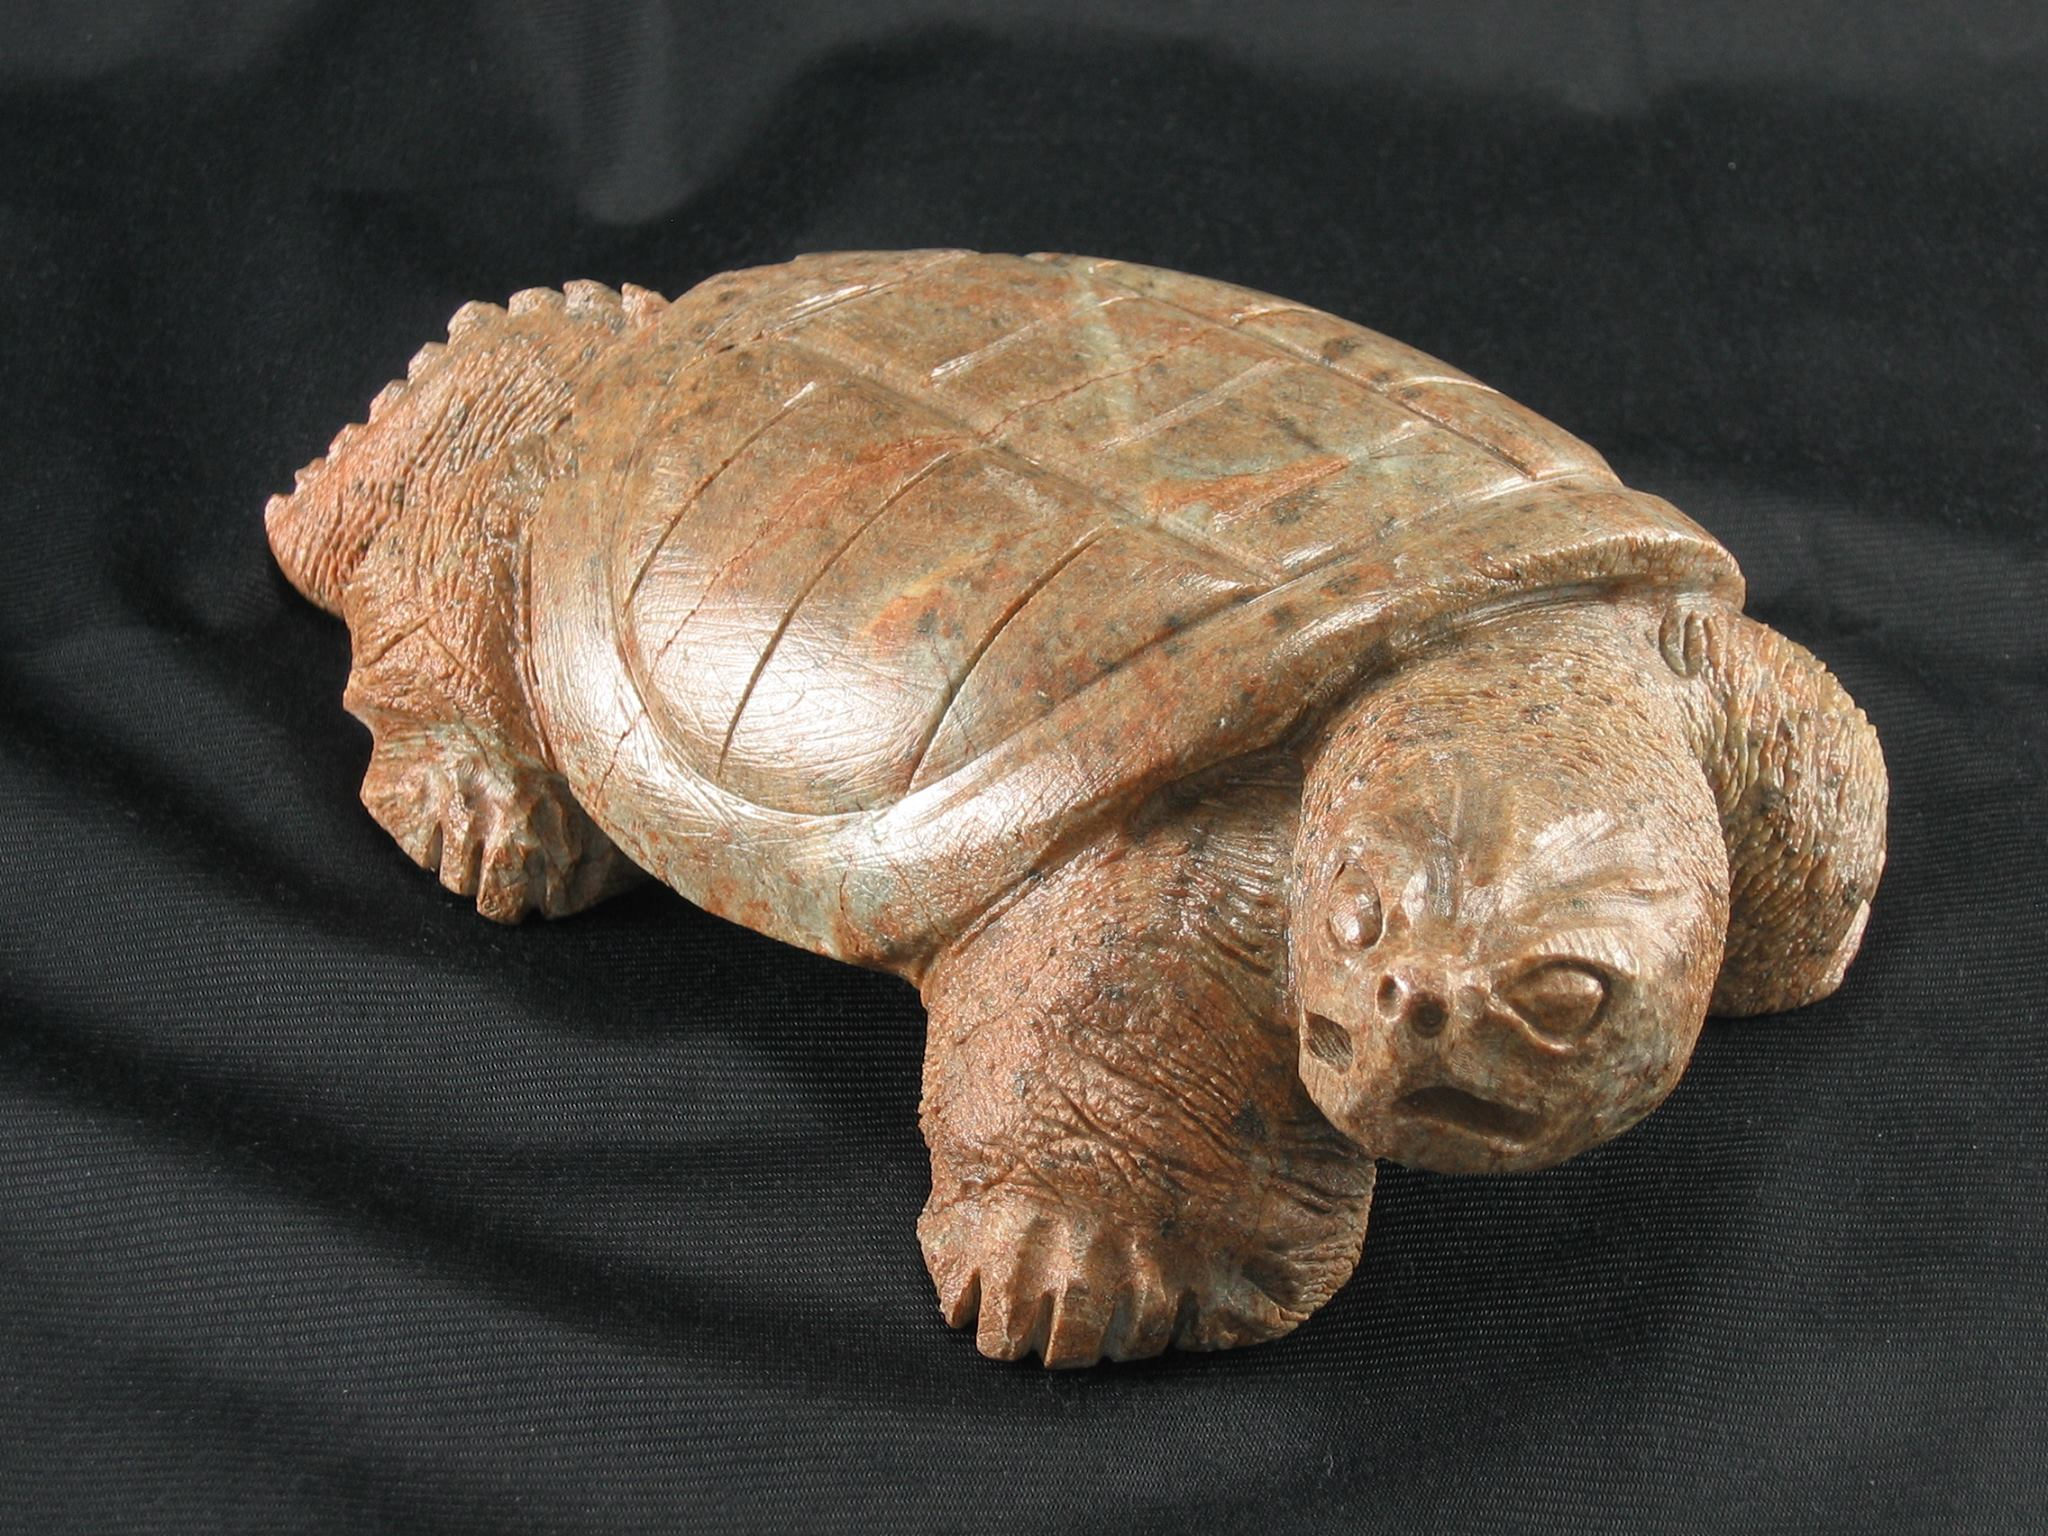 Snapping Turtle Soapstone Sculpture by Cayuga Artist, Sam General